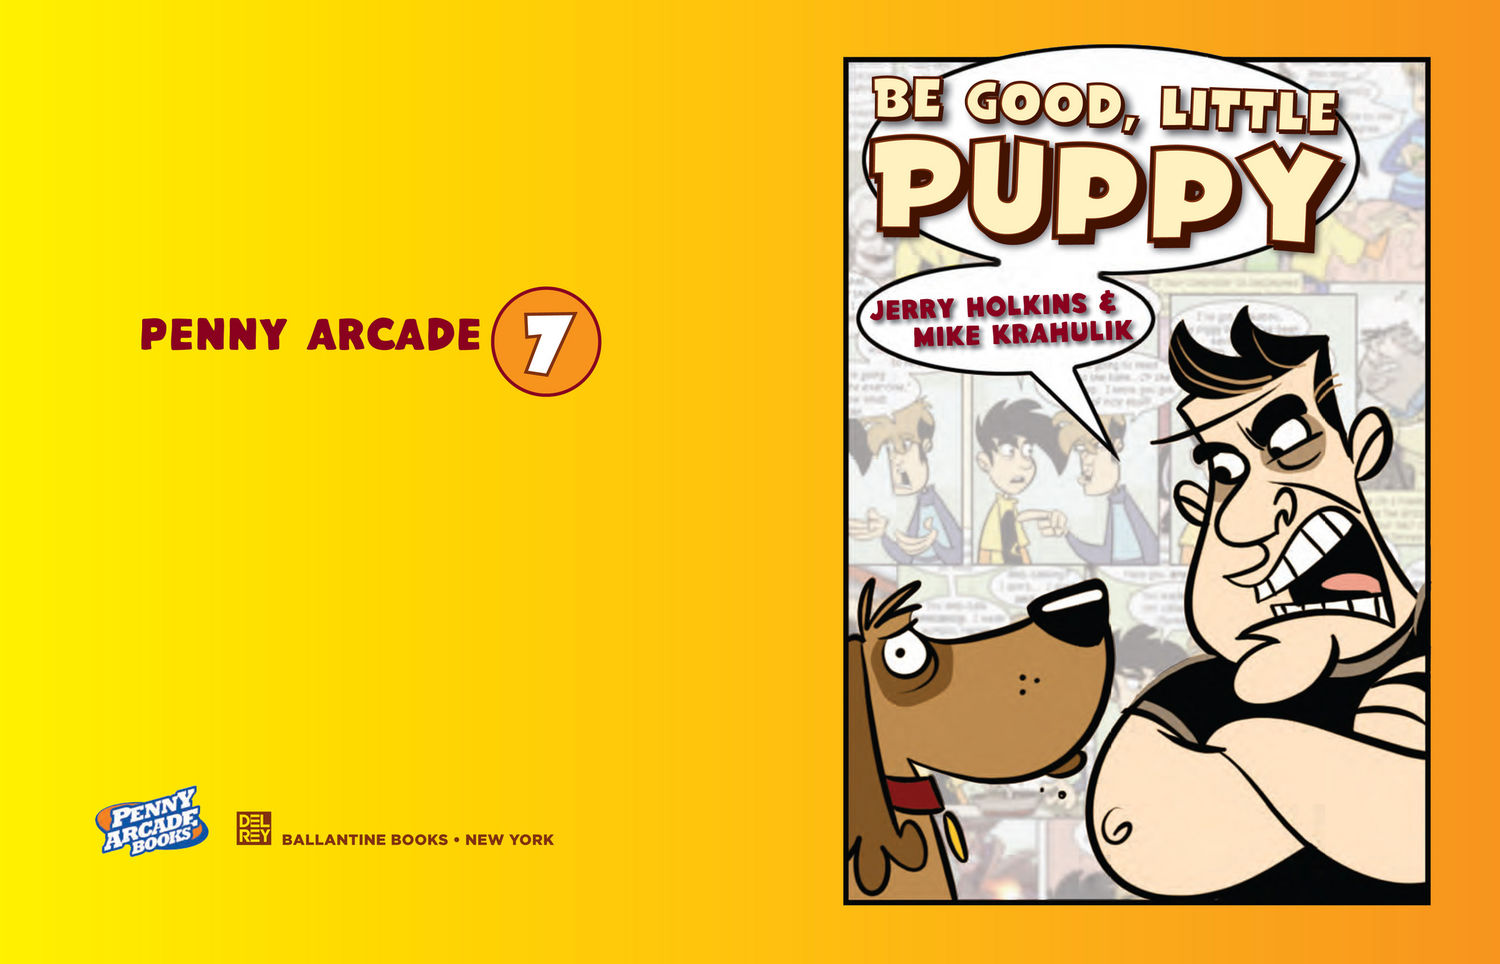 PENNY ARCADE 7 : Be Good, Little Puppy